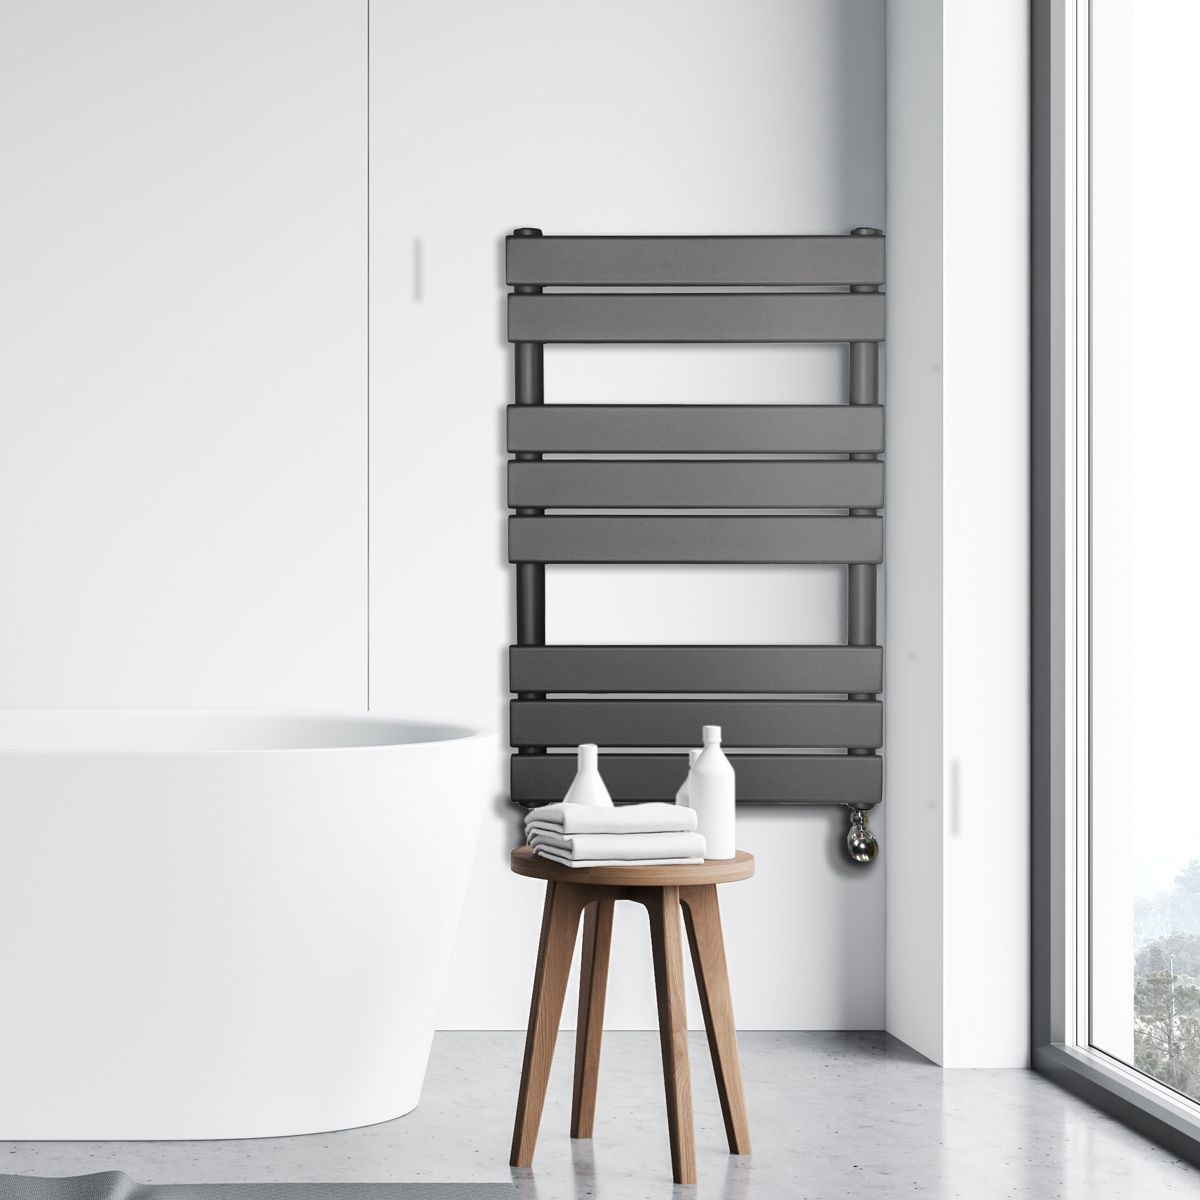 grey adige designer towel radiator 8 panels 2.jpg